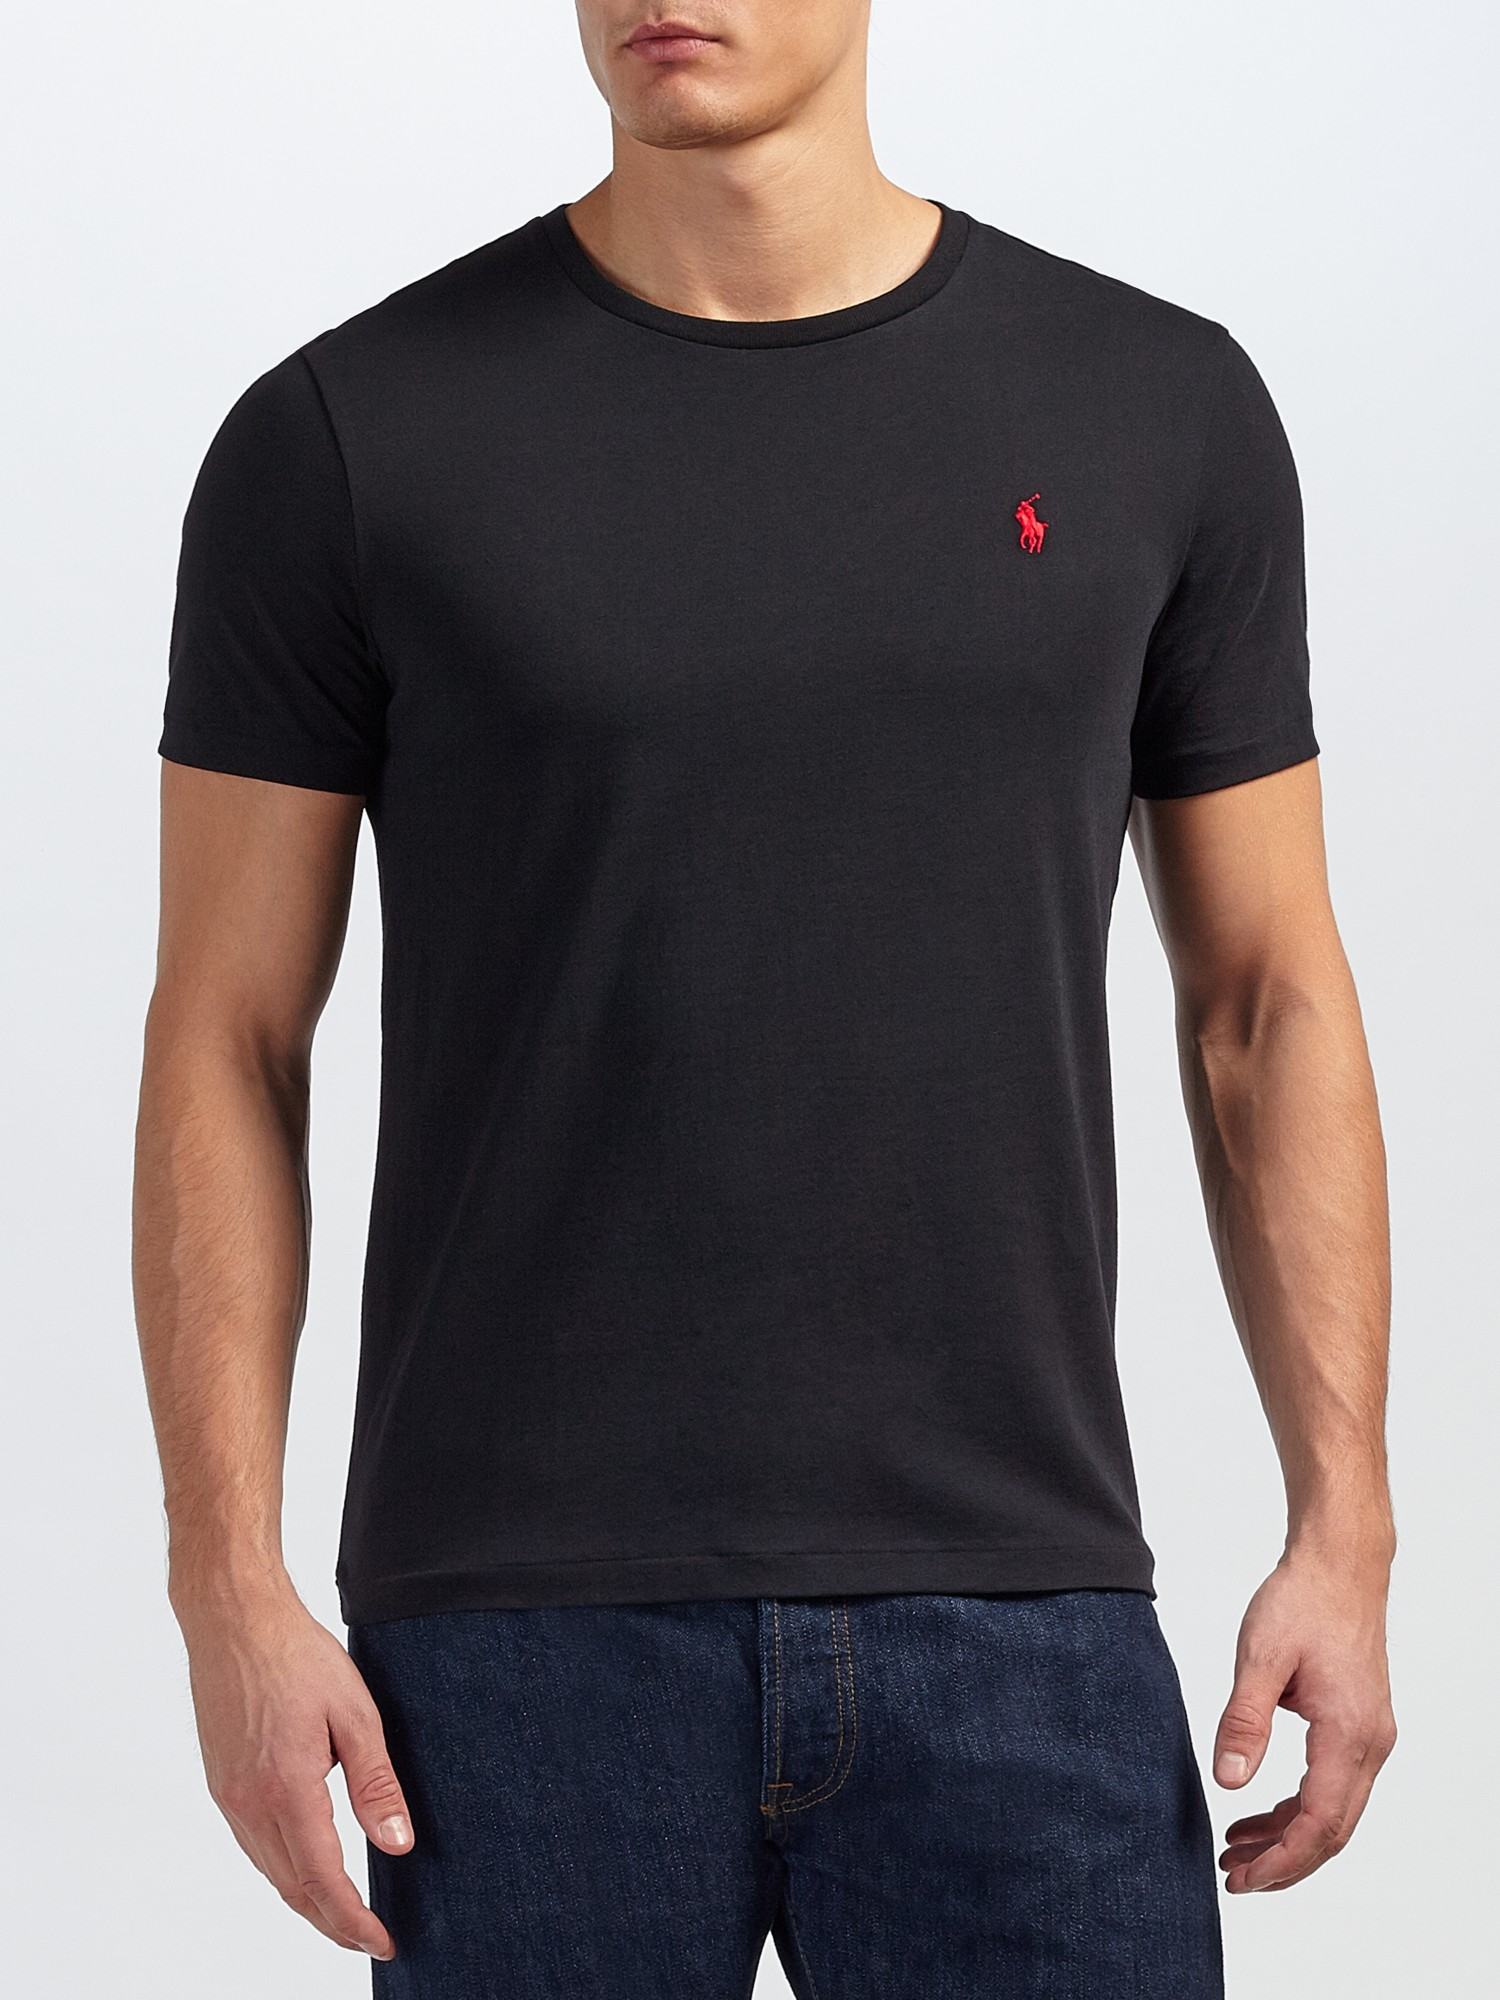 lyst polo ralph lauren basic custom fit t shirt in black for men. Black Bedroom Furniture Sets. Home Design Ideas